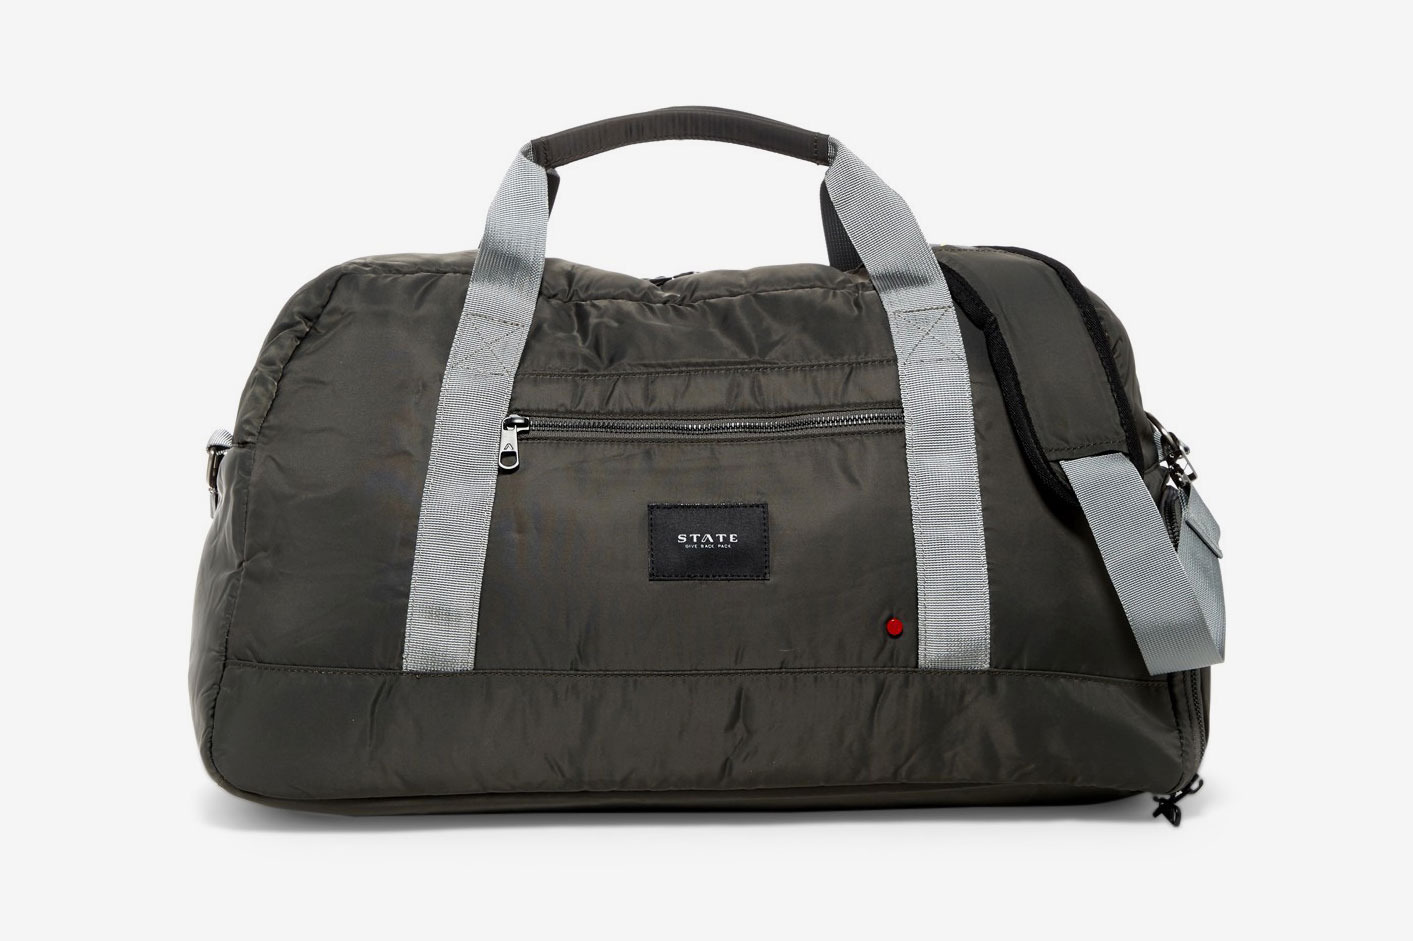 State Bags Franklin Duffel